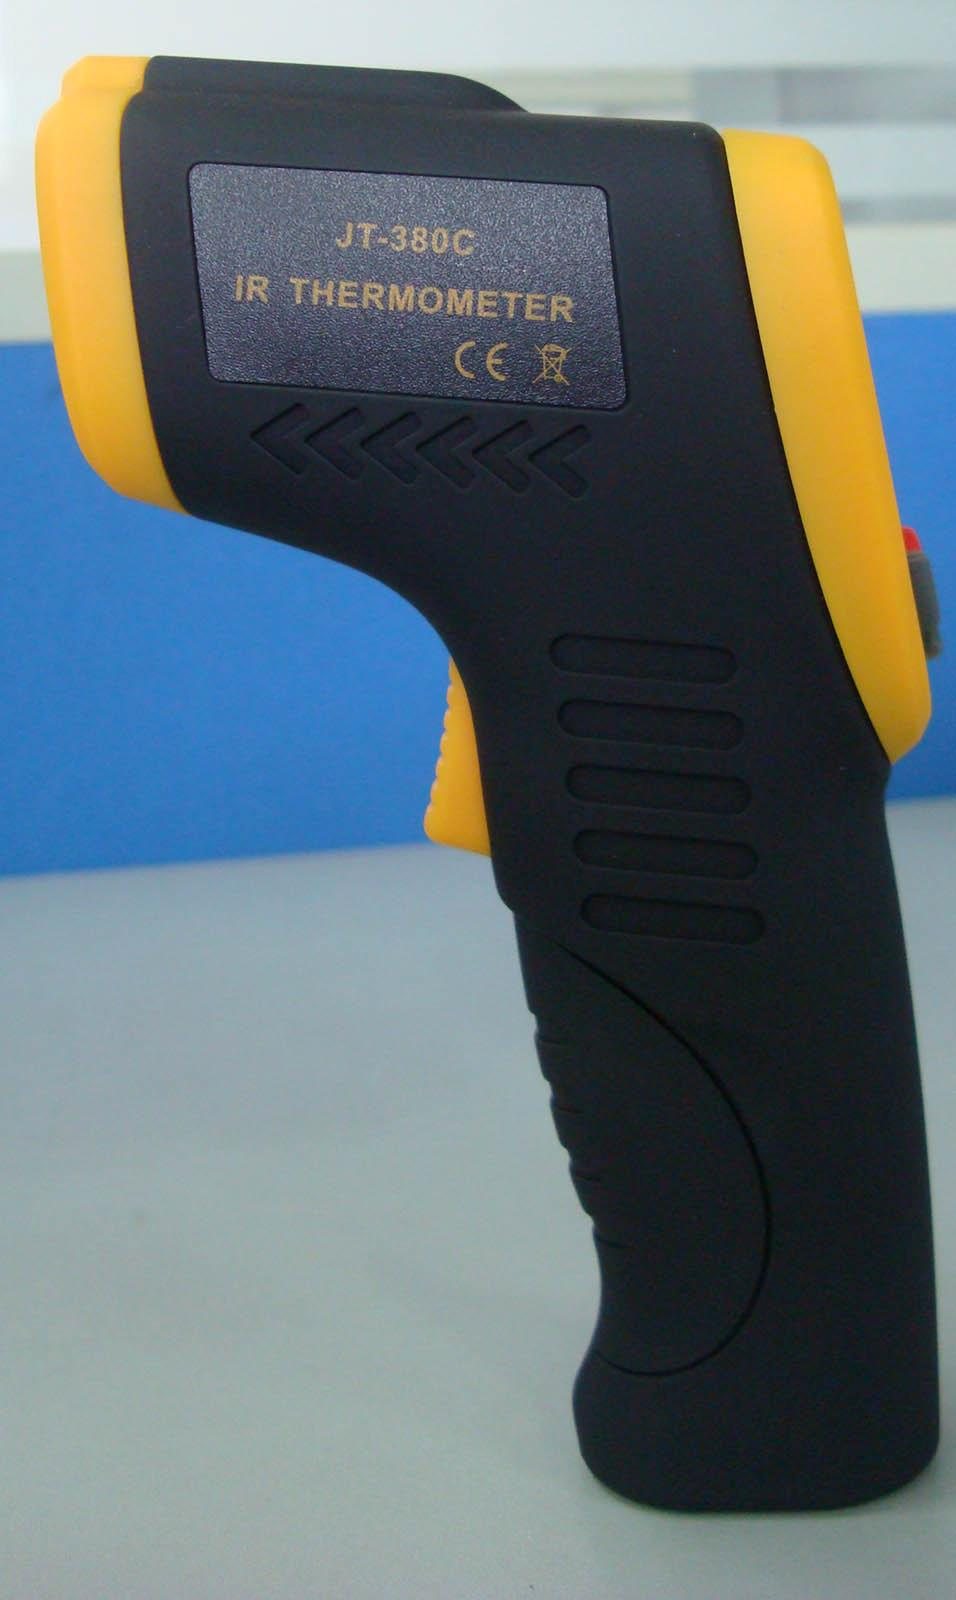 infrared-thermometer-jt380c.JPG